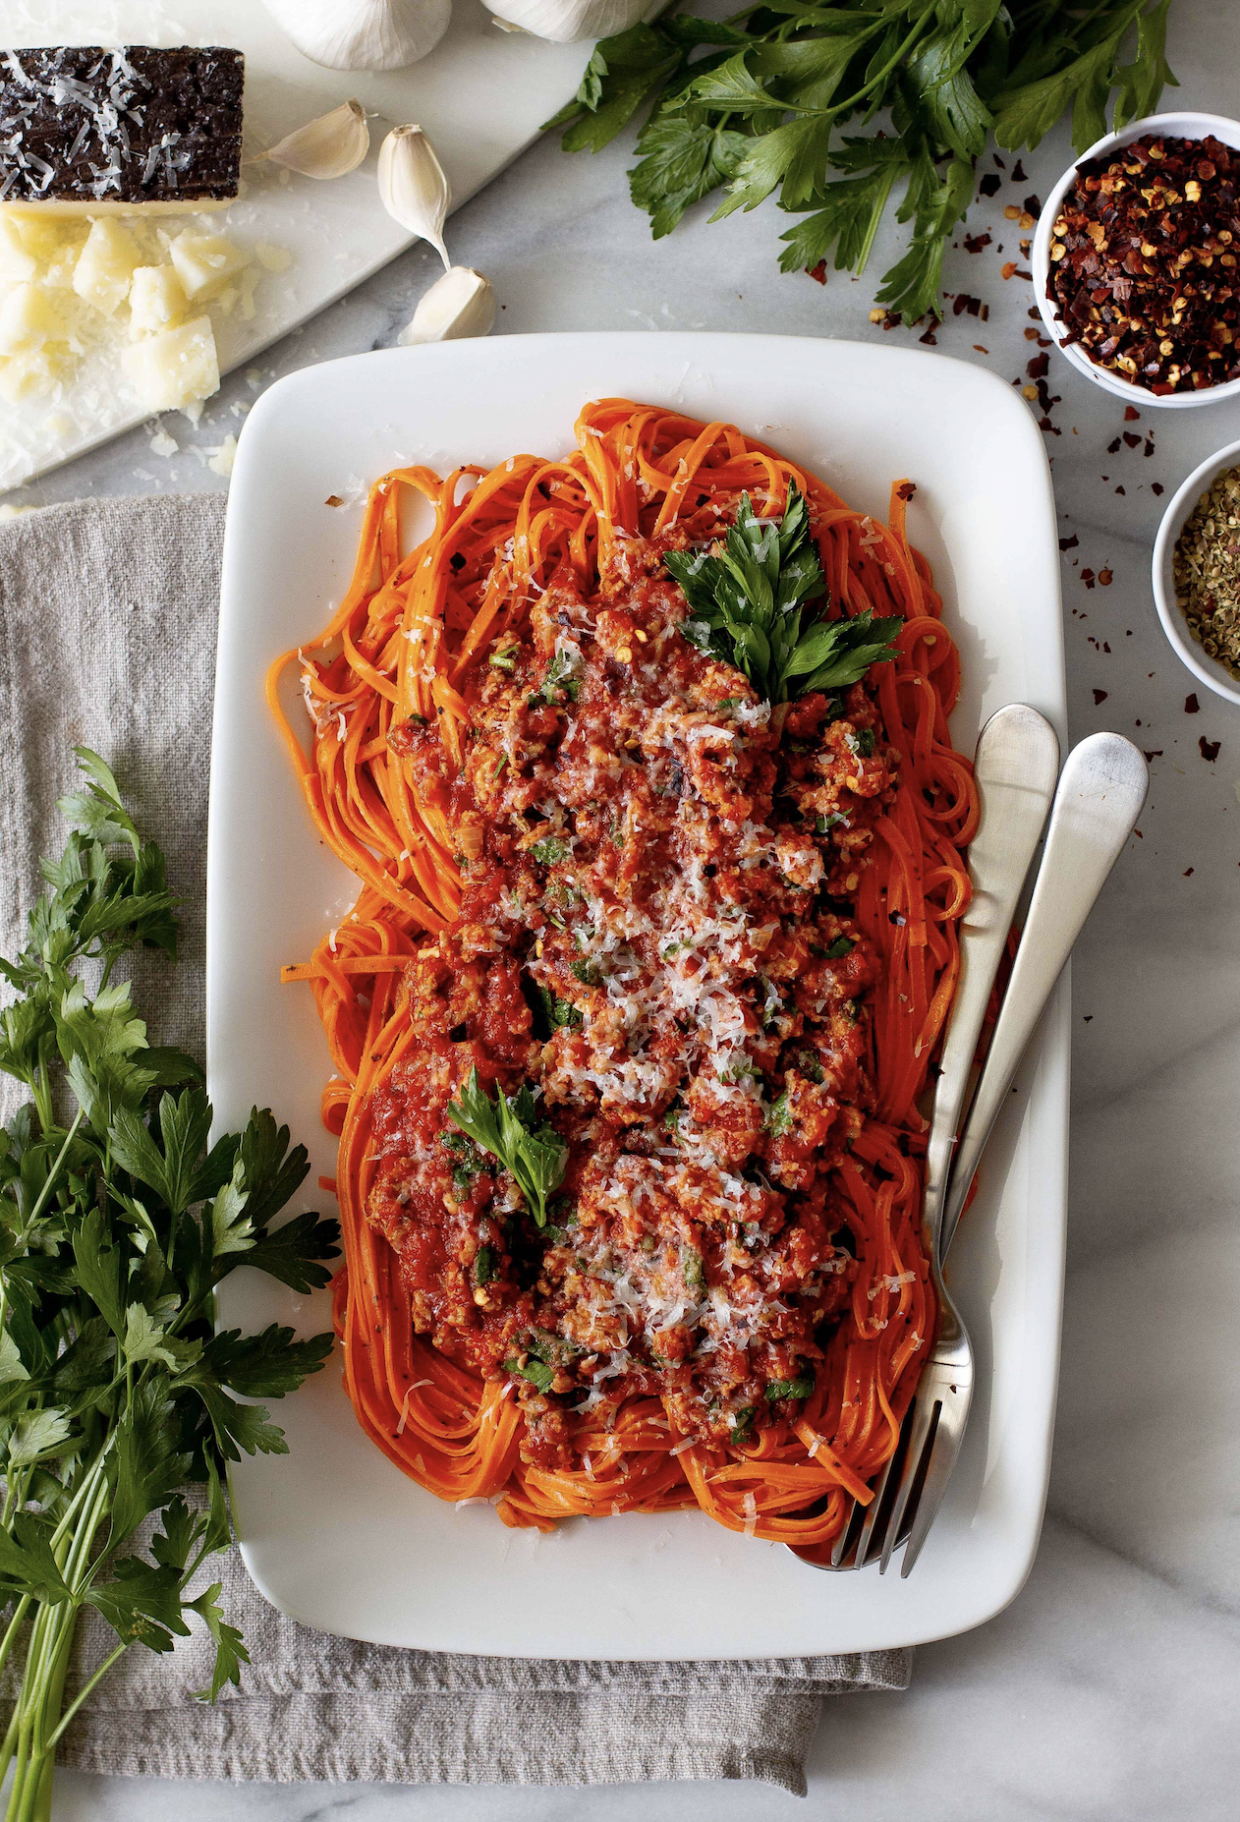 Hot Red Pepper Linguine with Calabrese Meat Sauce